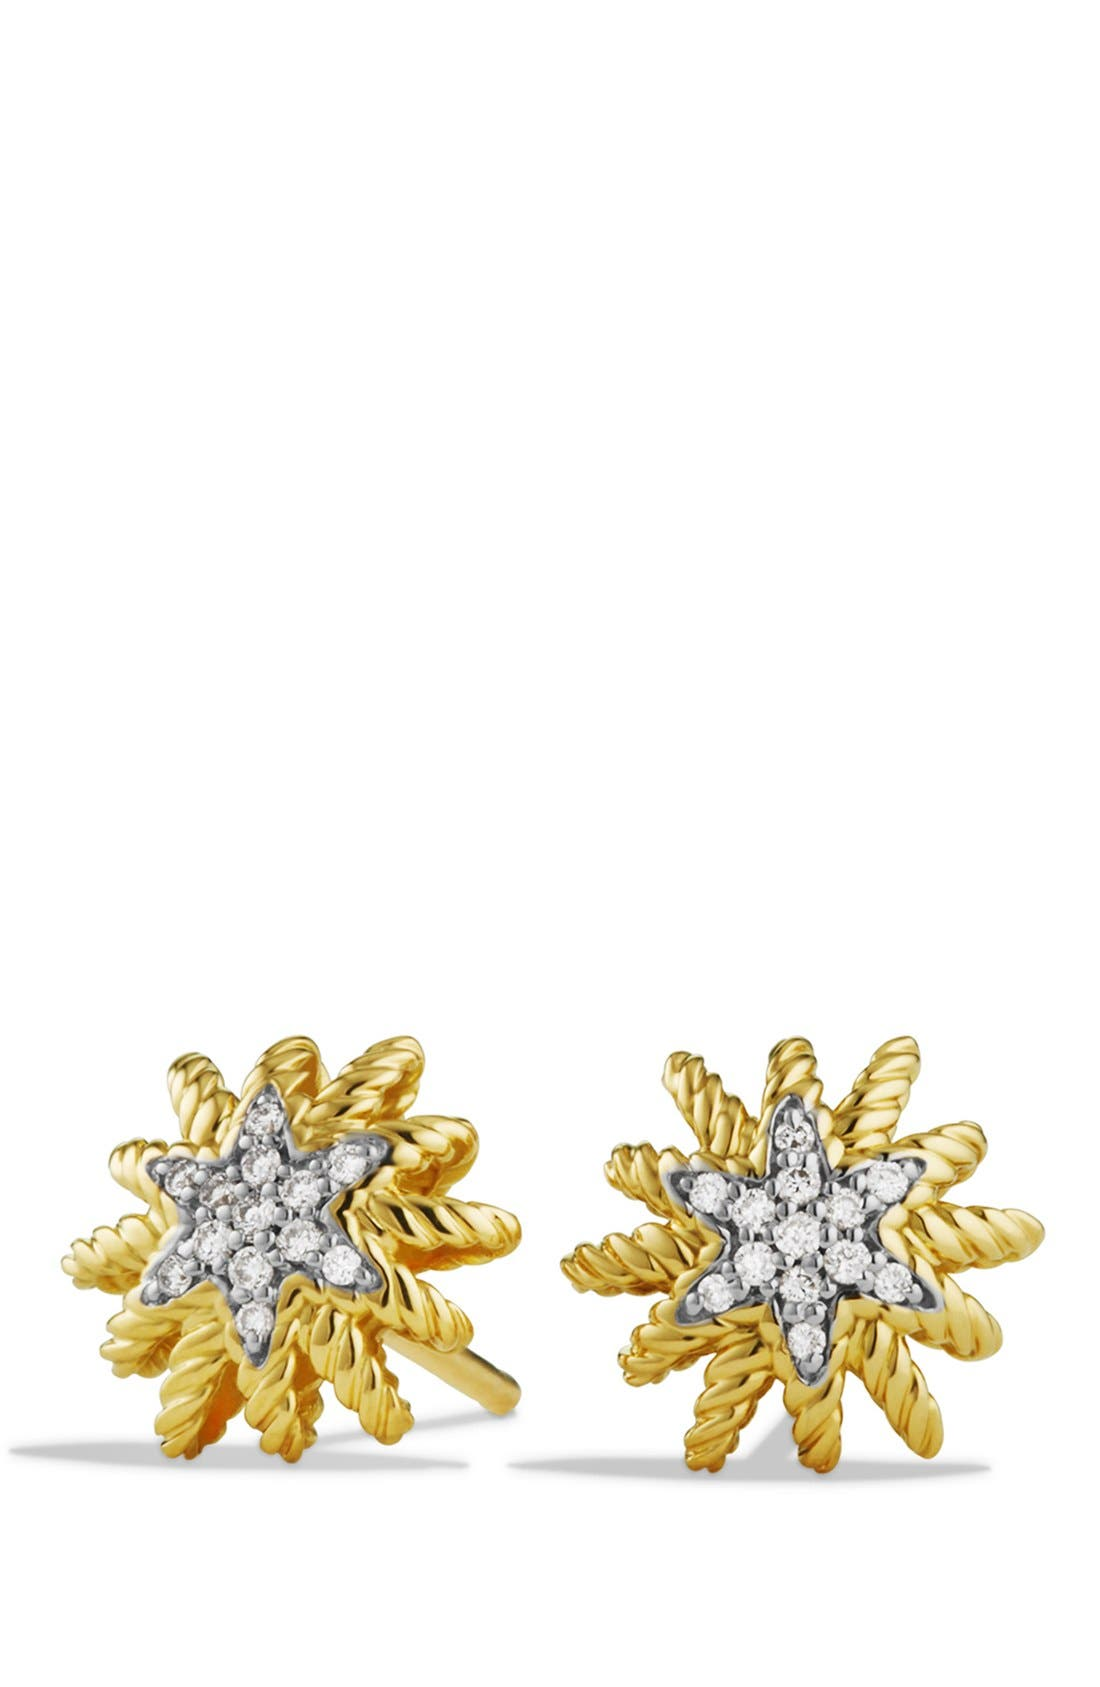 David Yurman 'Starburst' Mini Earrings with Diamonds in Gold